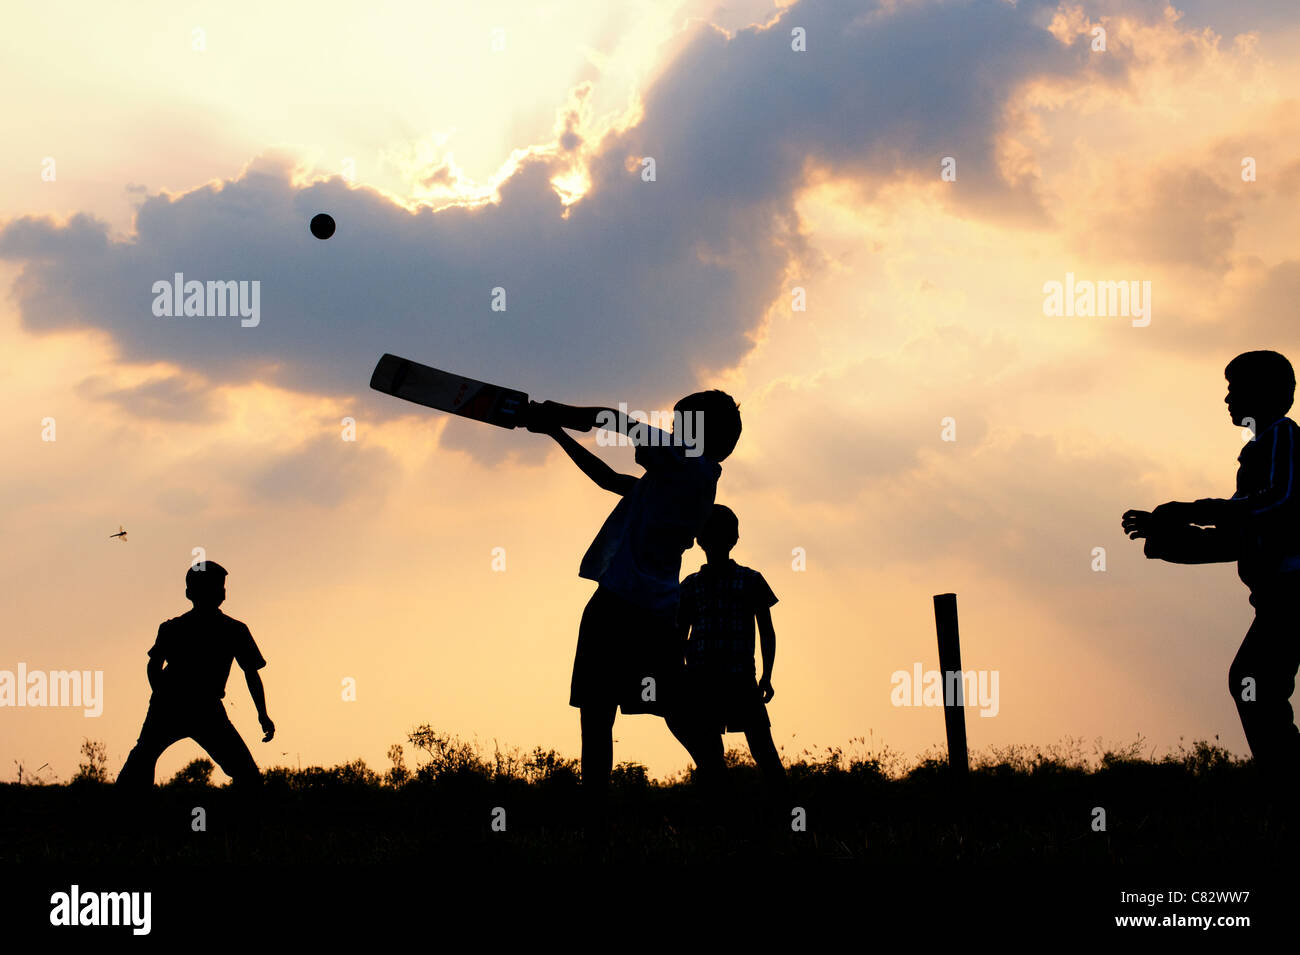 Silhouette of young Indian boys playing cricket against a cloudy sunset background. India - Stock Image